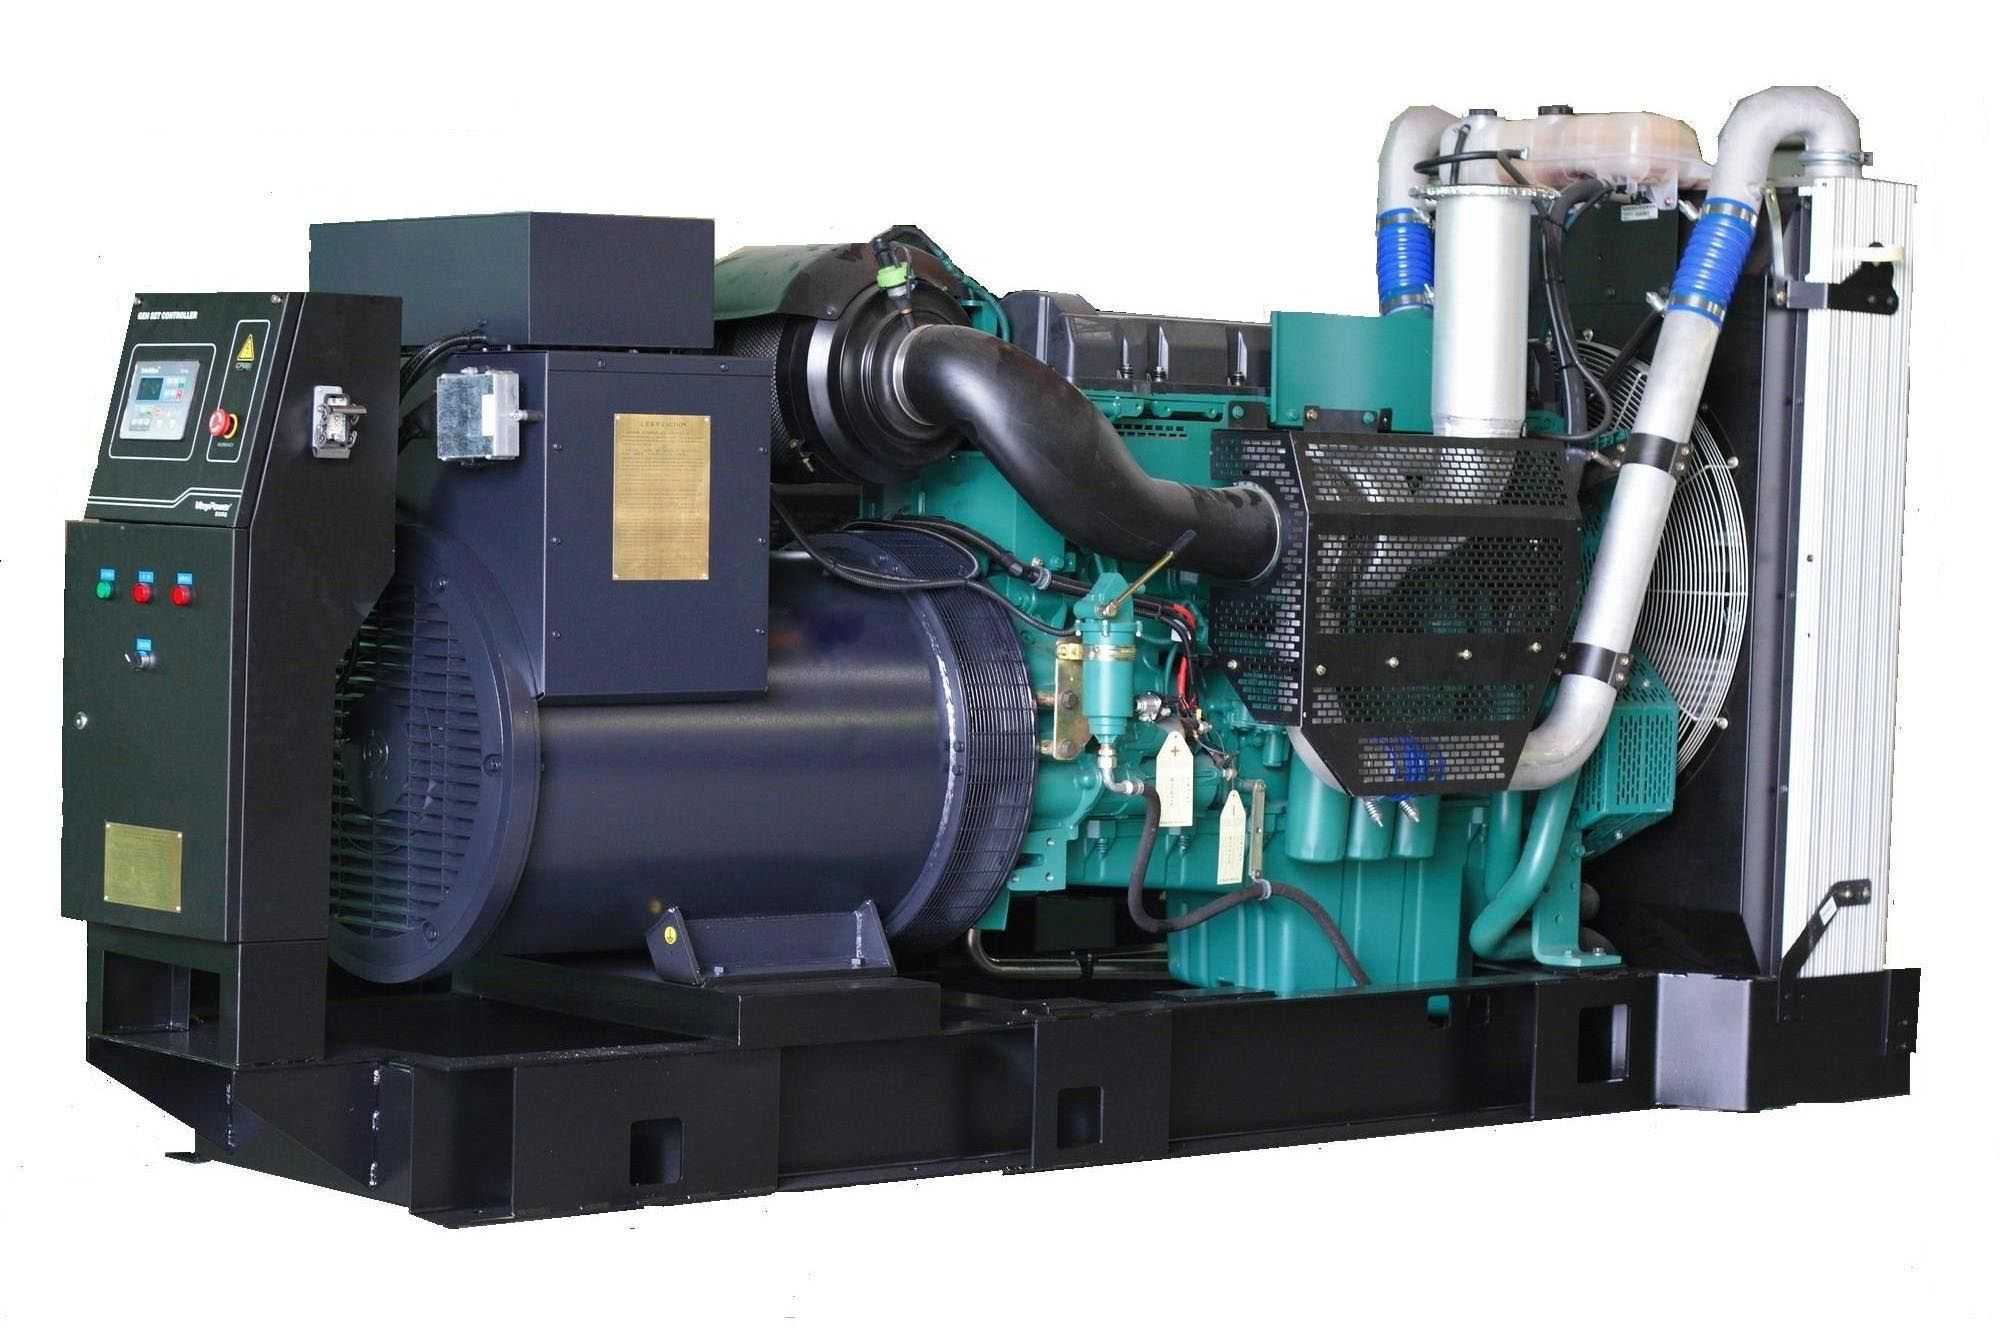 Http Www Powergenaustralia Com Au Generators For Sale Html Diesel Generators Generators For Sale Diesel